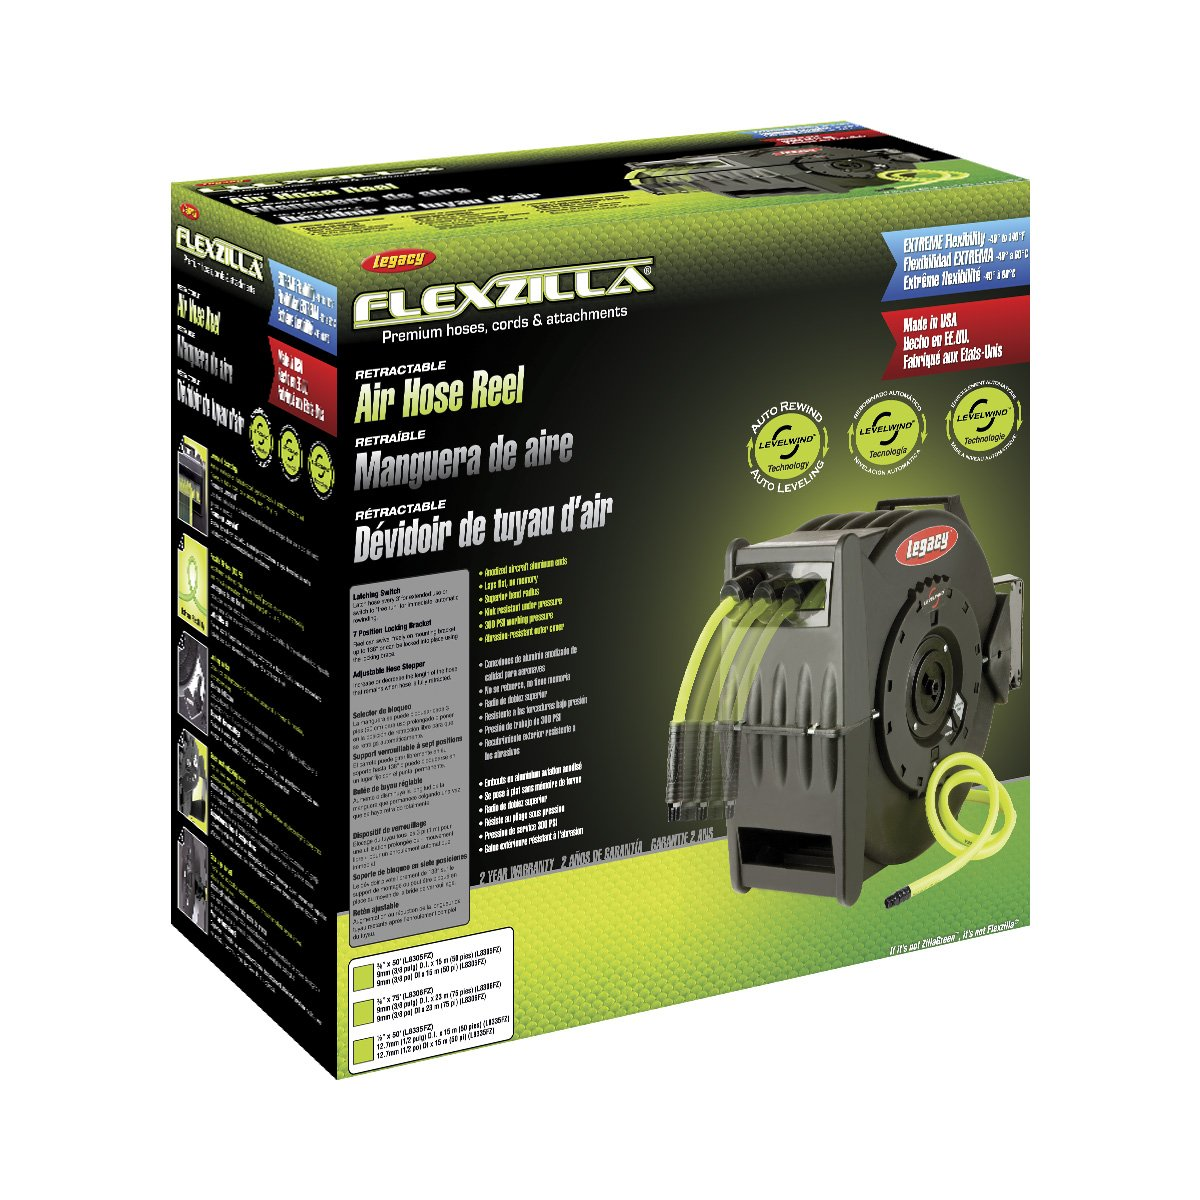 Flexzilla Levelwind Retractable Air Hose Reel, 3/8 in. x 50 ft., Heavy Duty, Lightweight, Hybrid, ZillaGreen - L8305FZ by Legacy Manufacturing (Image #1)